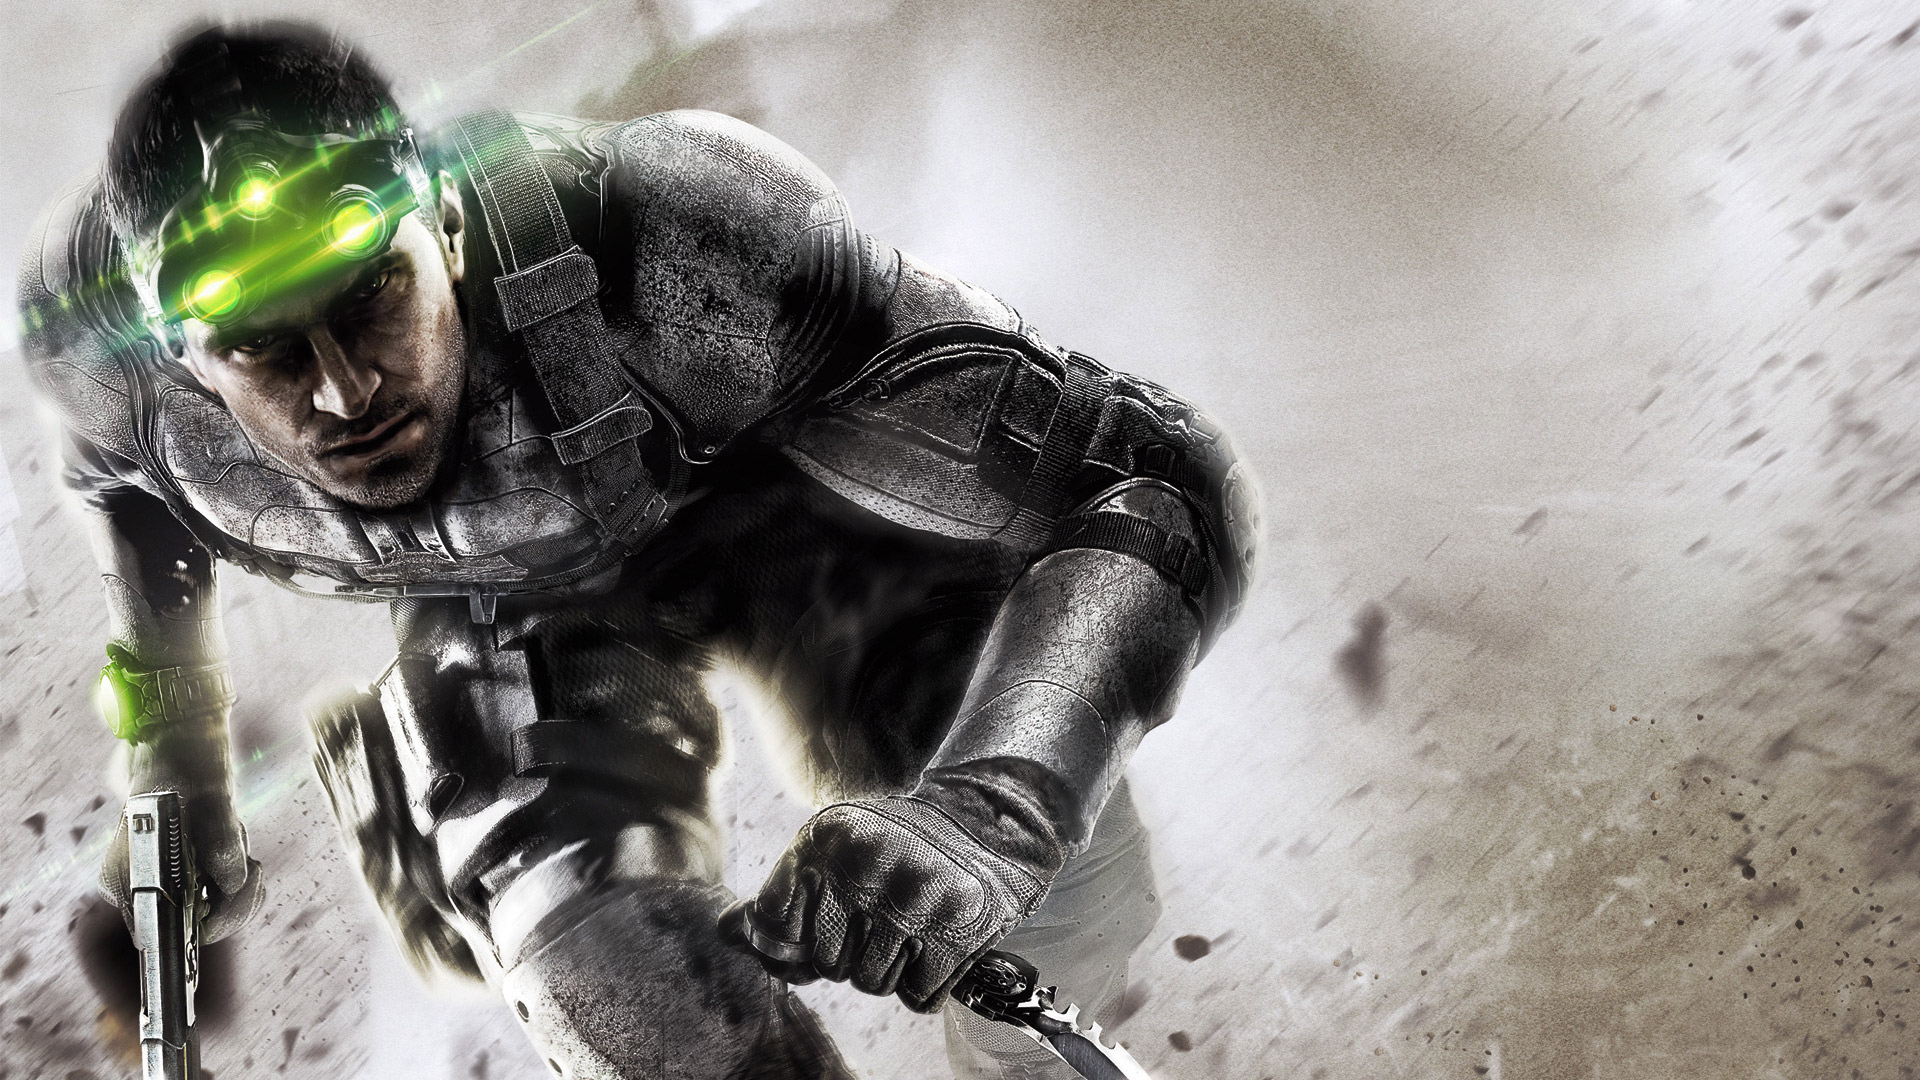 Tom Clancys Splinter Cell Blacklist Game Wallpapers HD Wallpapers 1920x1080